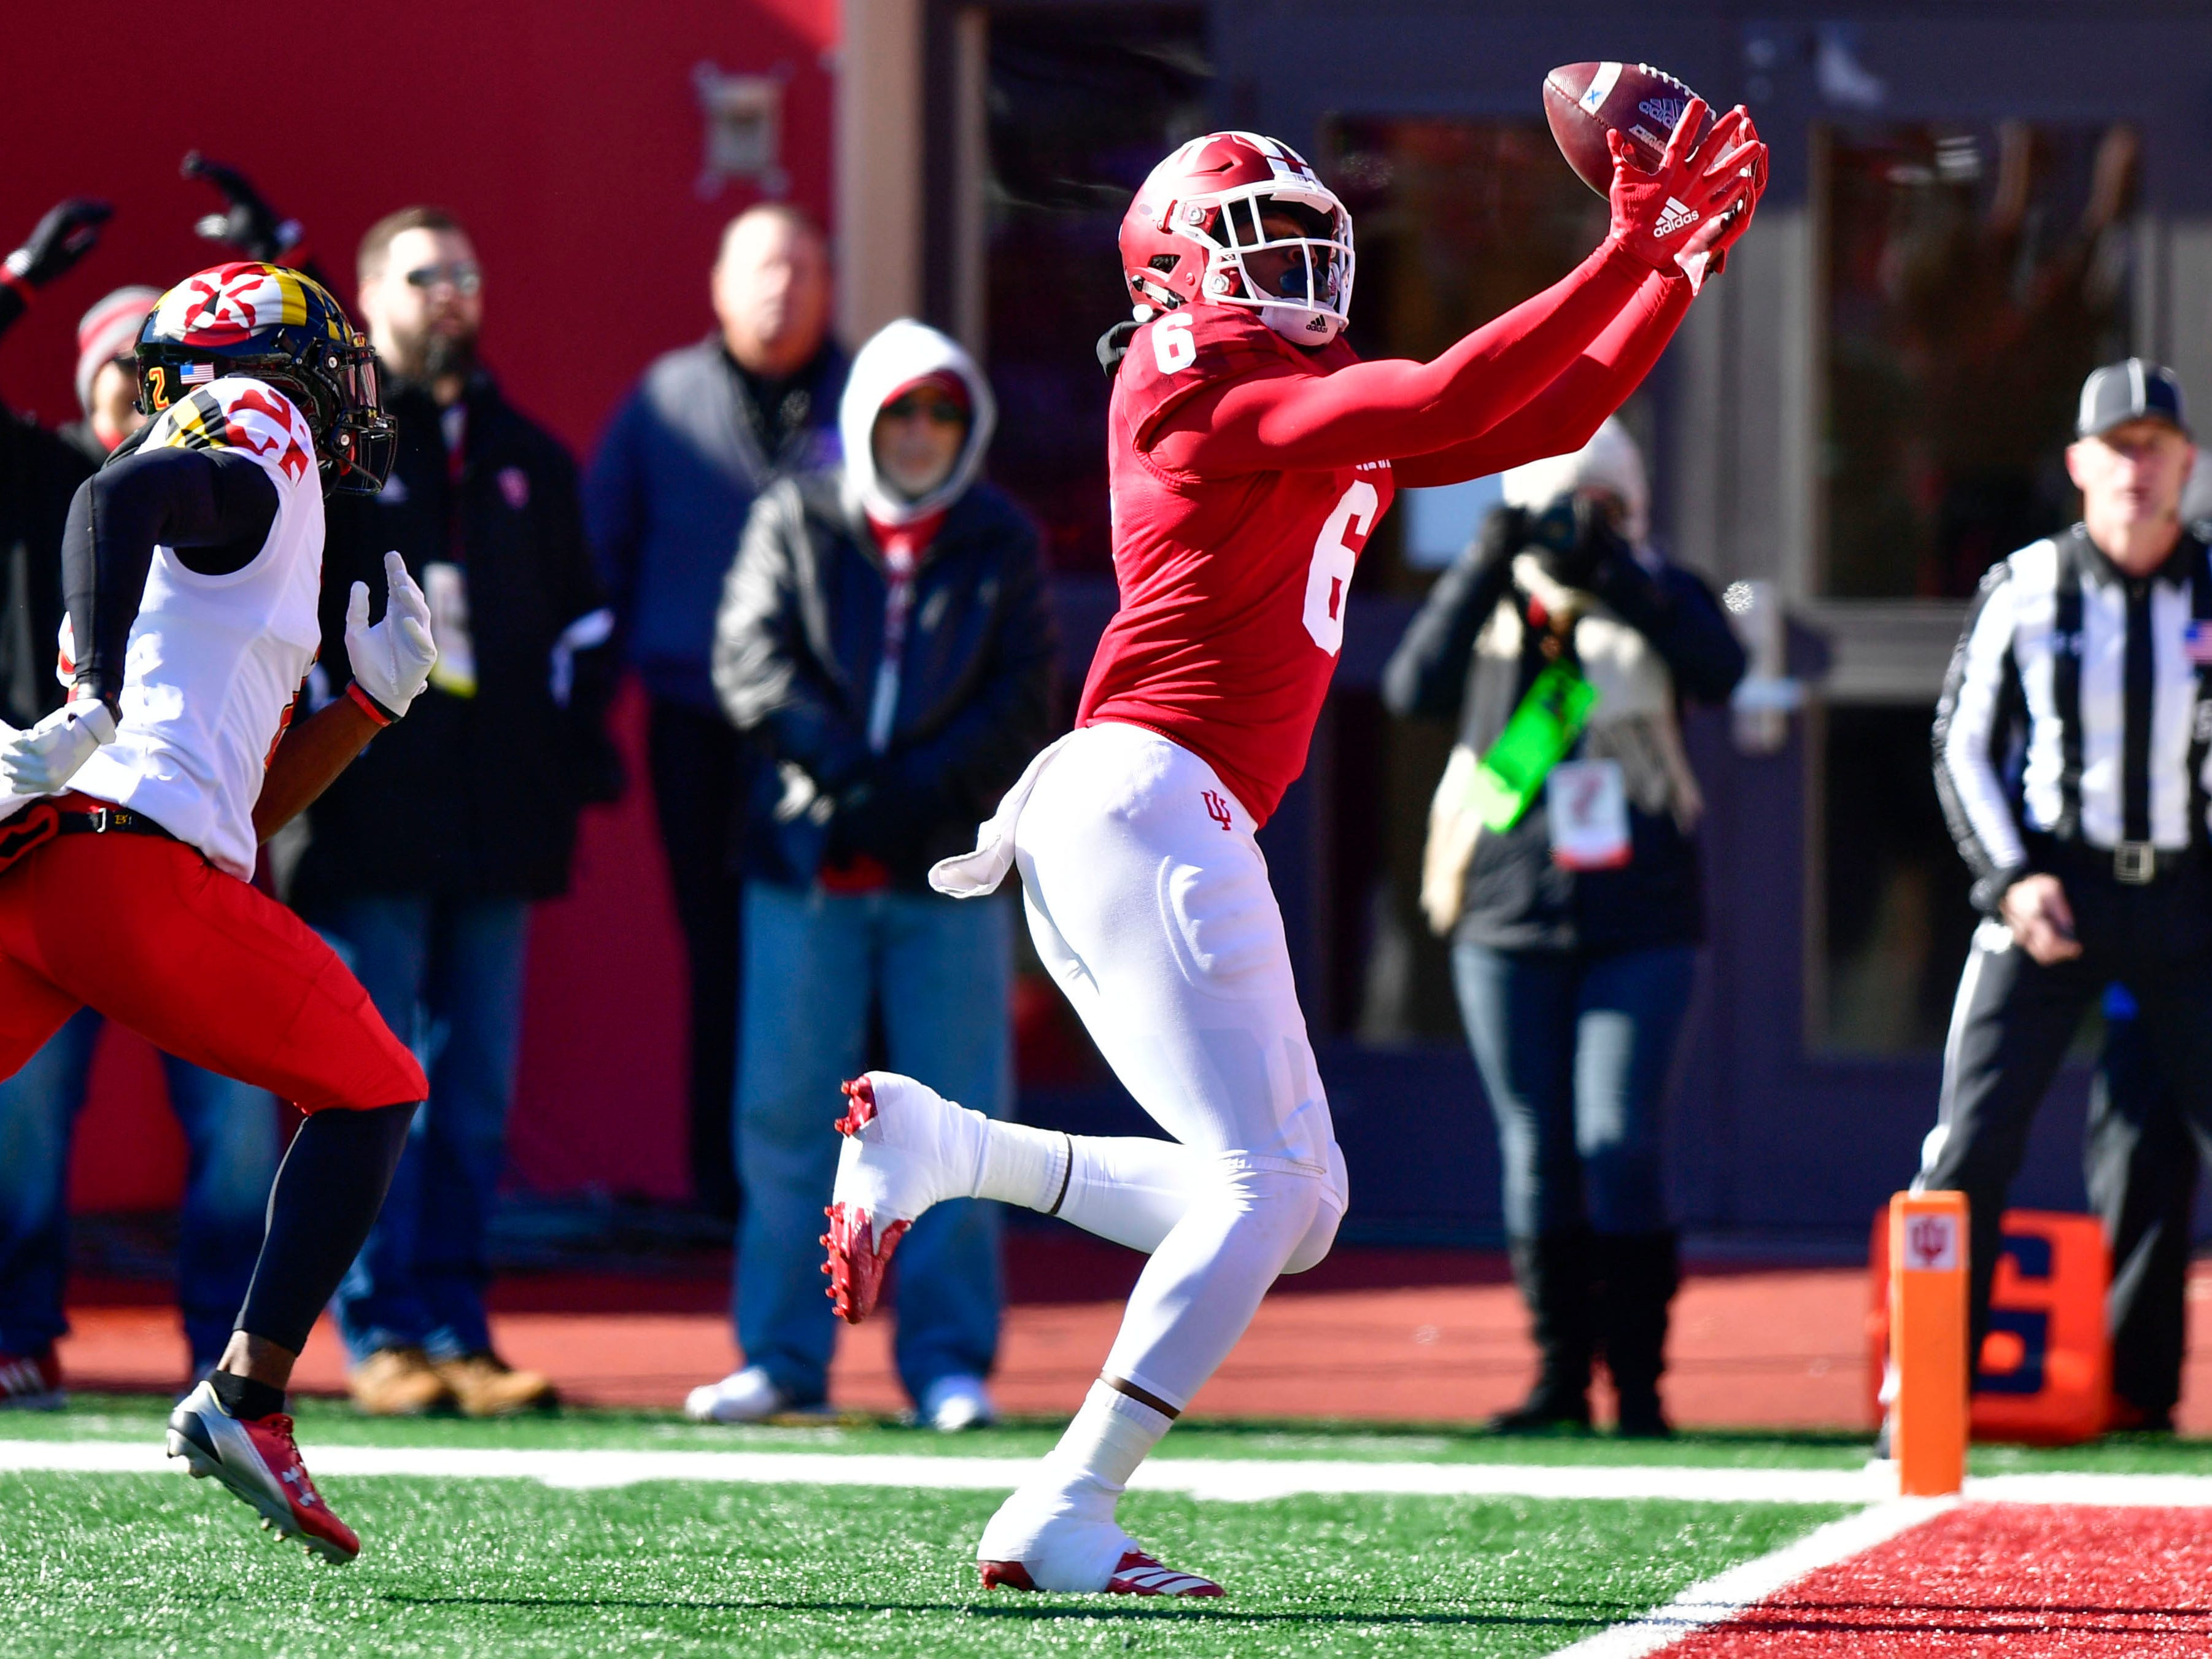 Indiana Hoosiers wide receiver Donavan Hale (6) catches a pass for a touchdown under coverage from Maryland Terrapins defensive back RaVon Davis (2) during the fist half of the the game at Memorial Stadium.